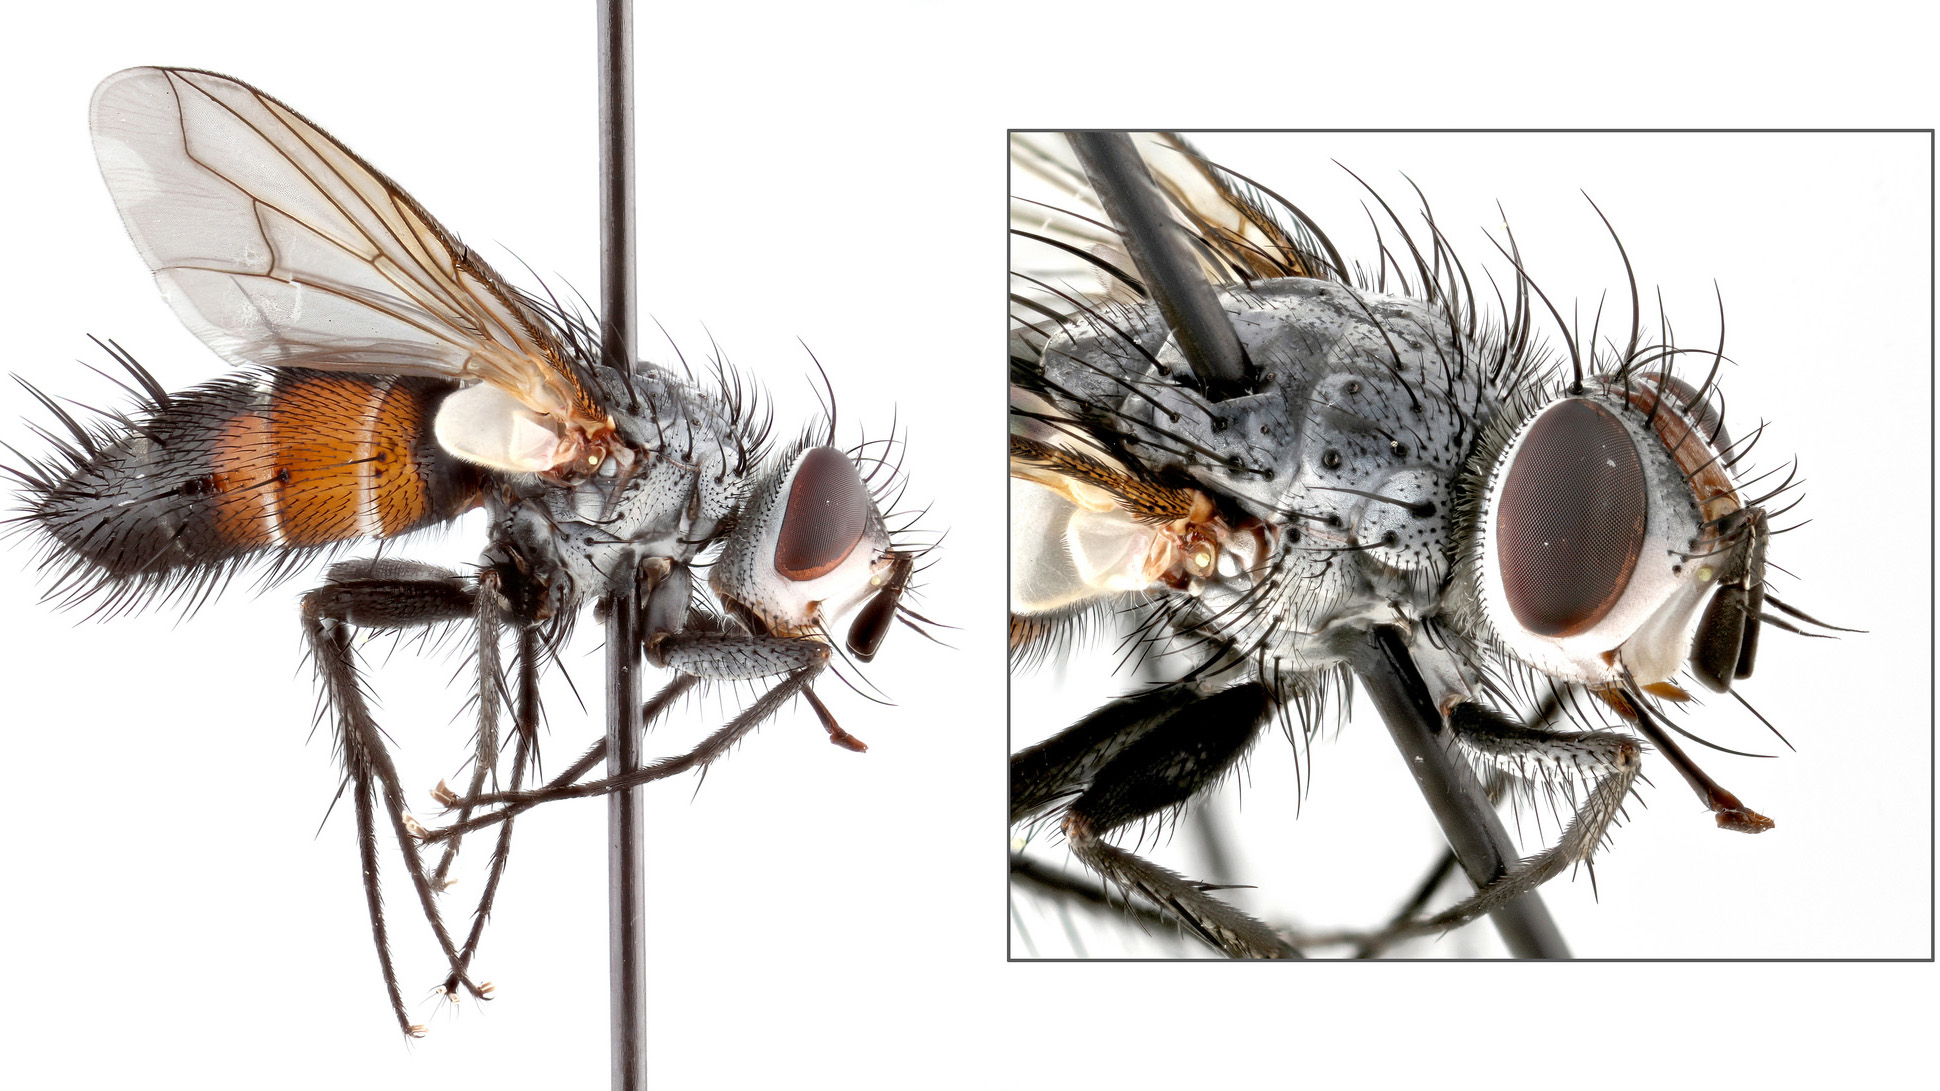 Close-up photos of flies